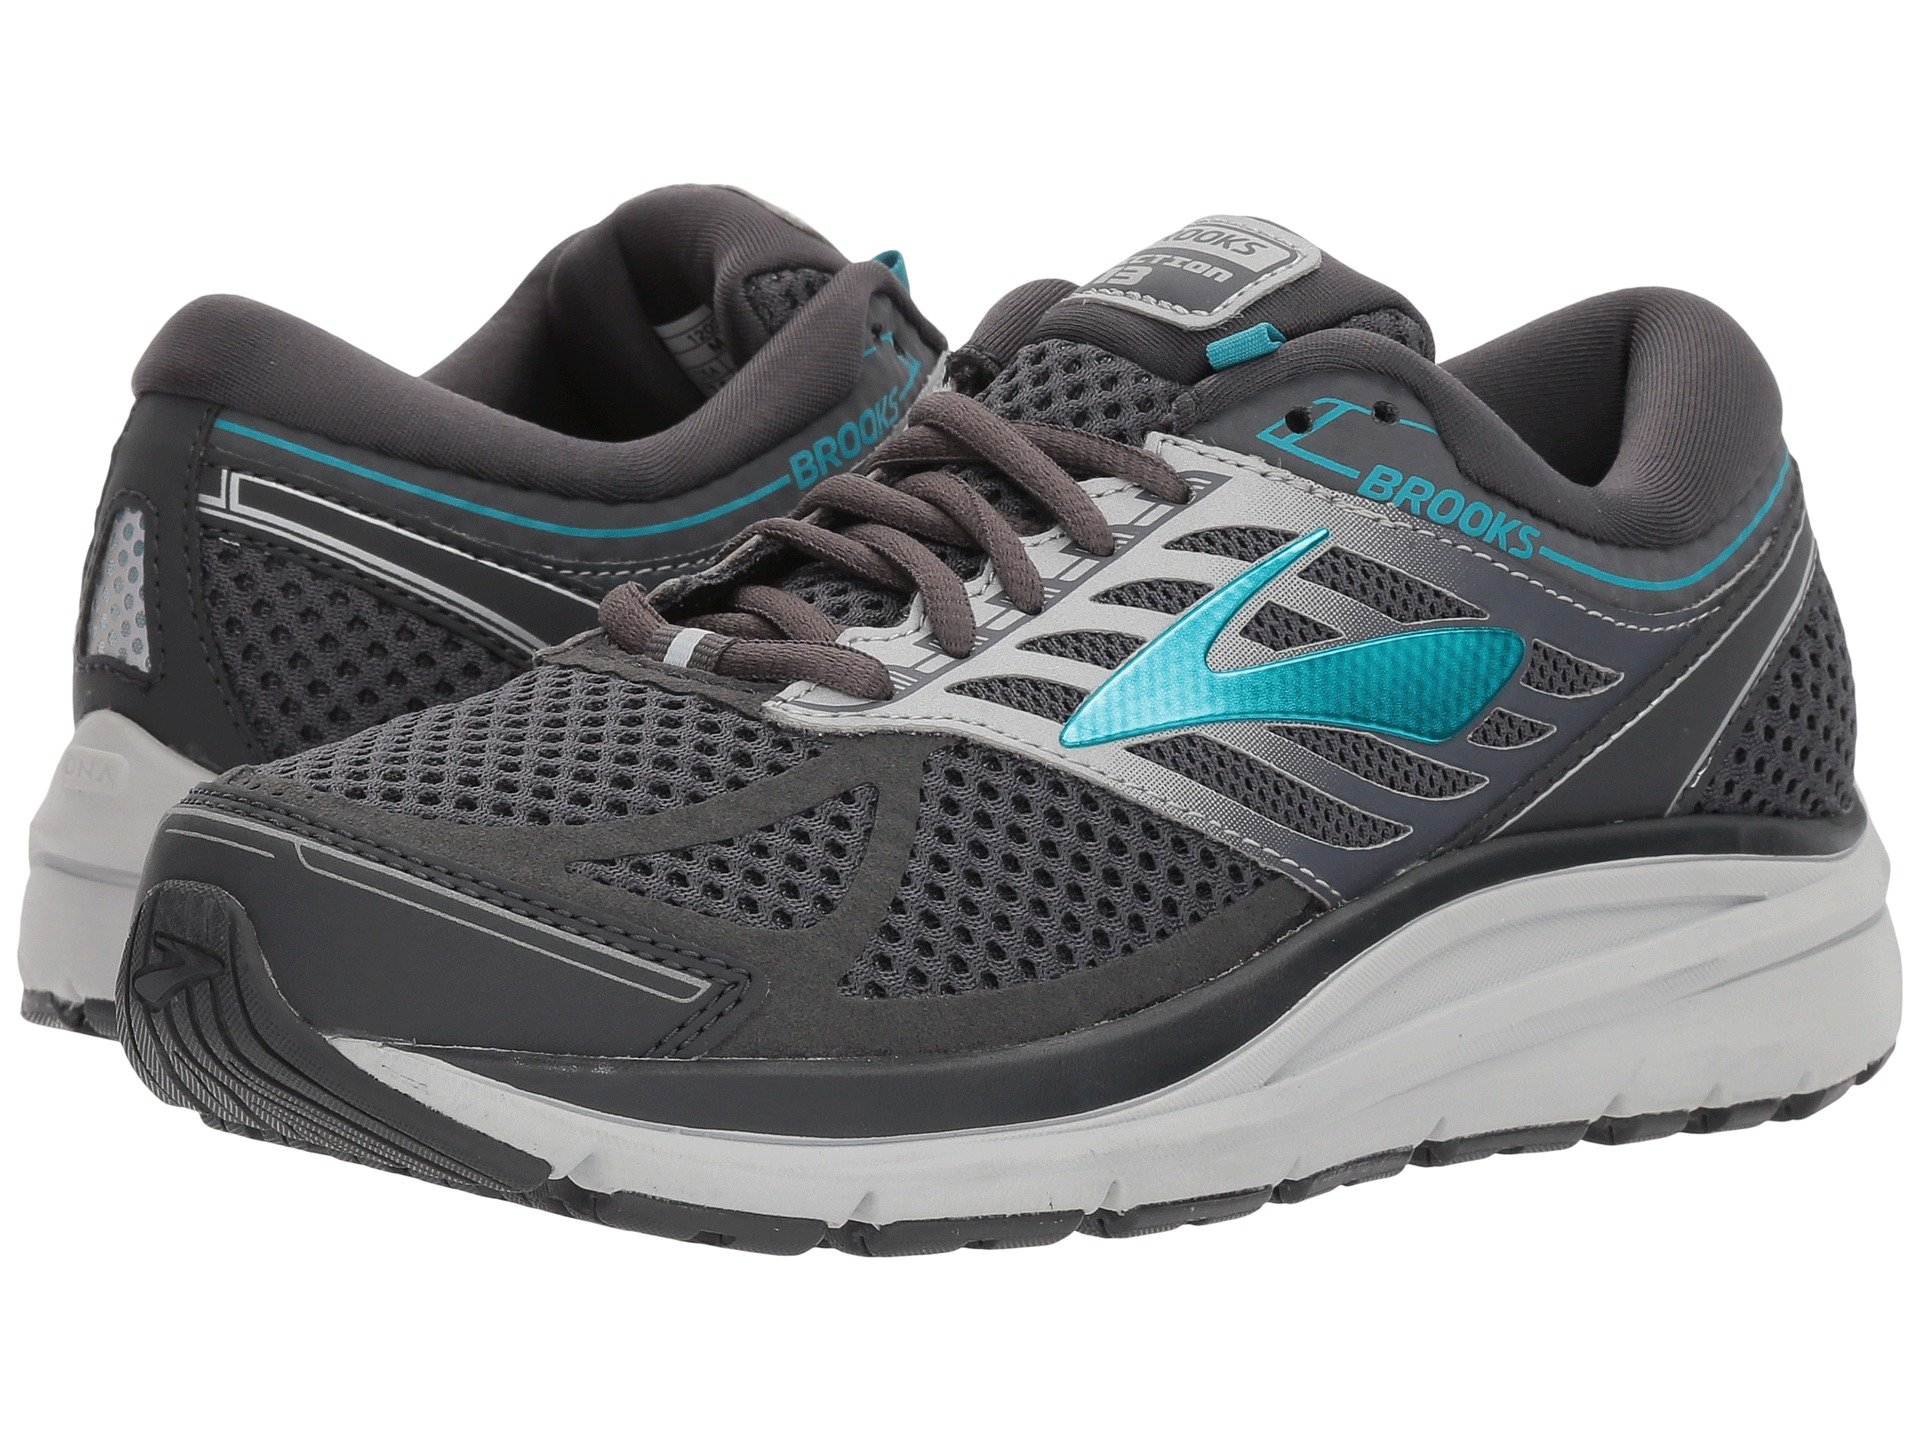 e66a14f56fd Women s Brooks Latest Styles + FREE SHIPPING